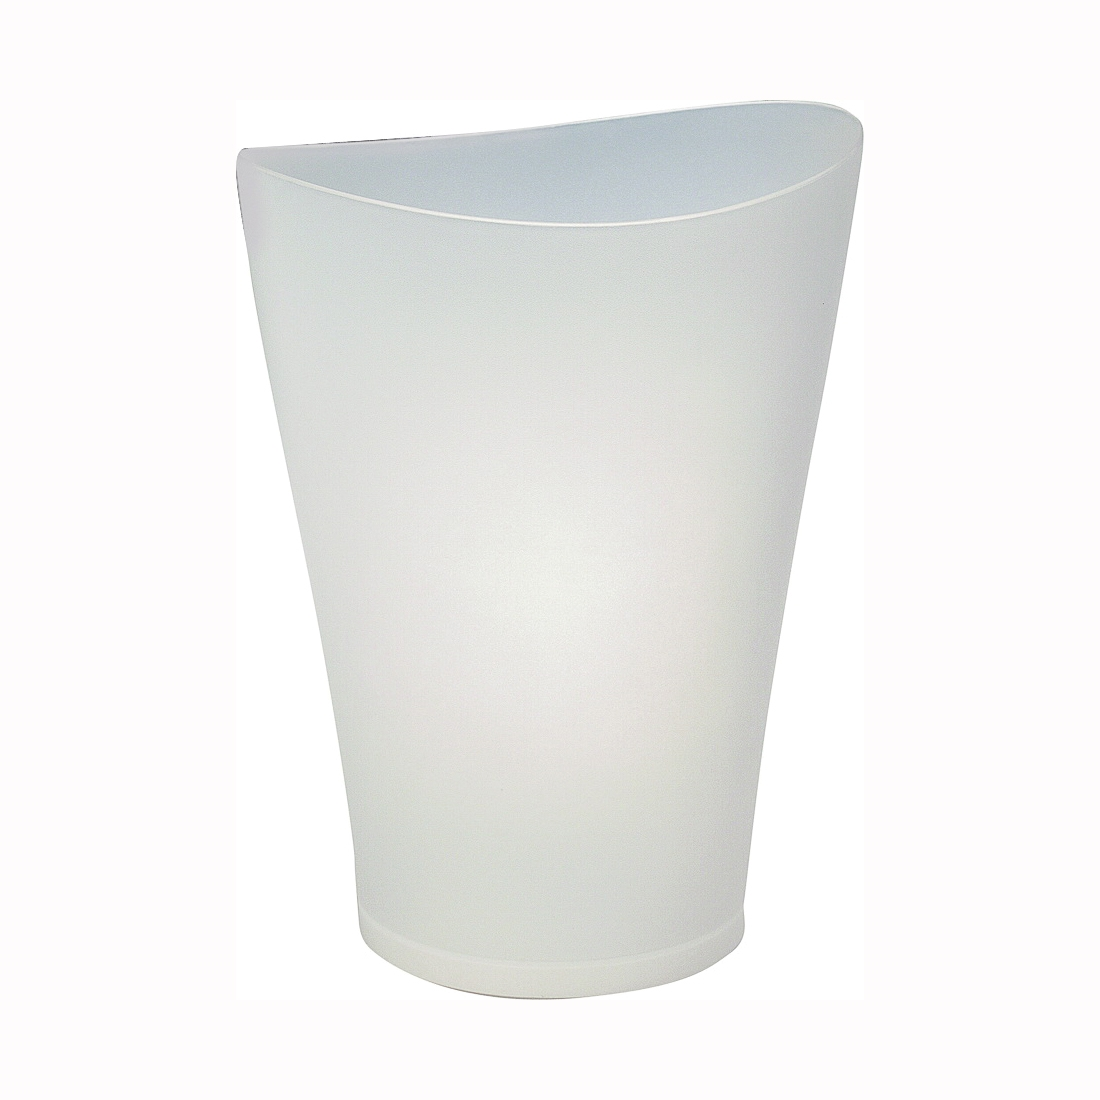 Picture of Rubbermaid SpaWorks FG290200CLR Vanity Waste Basket, 9 qt Capacity, Plastic, Clear, 10 in W, 7 in D, 13 in H